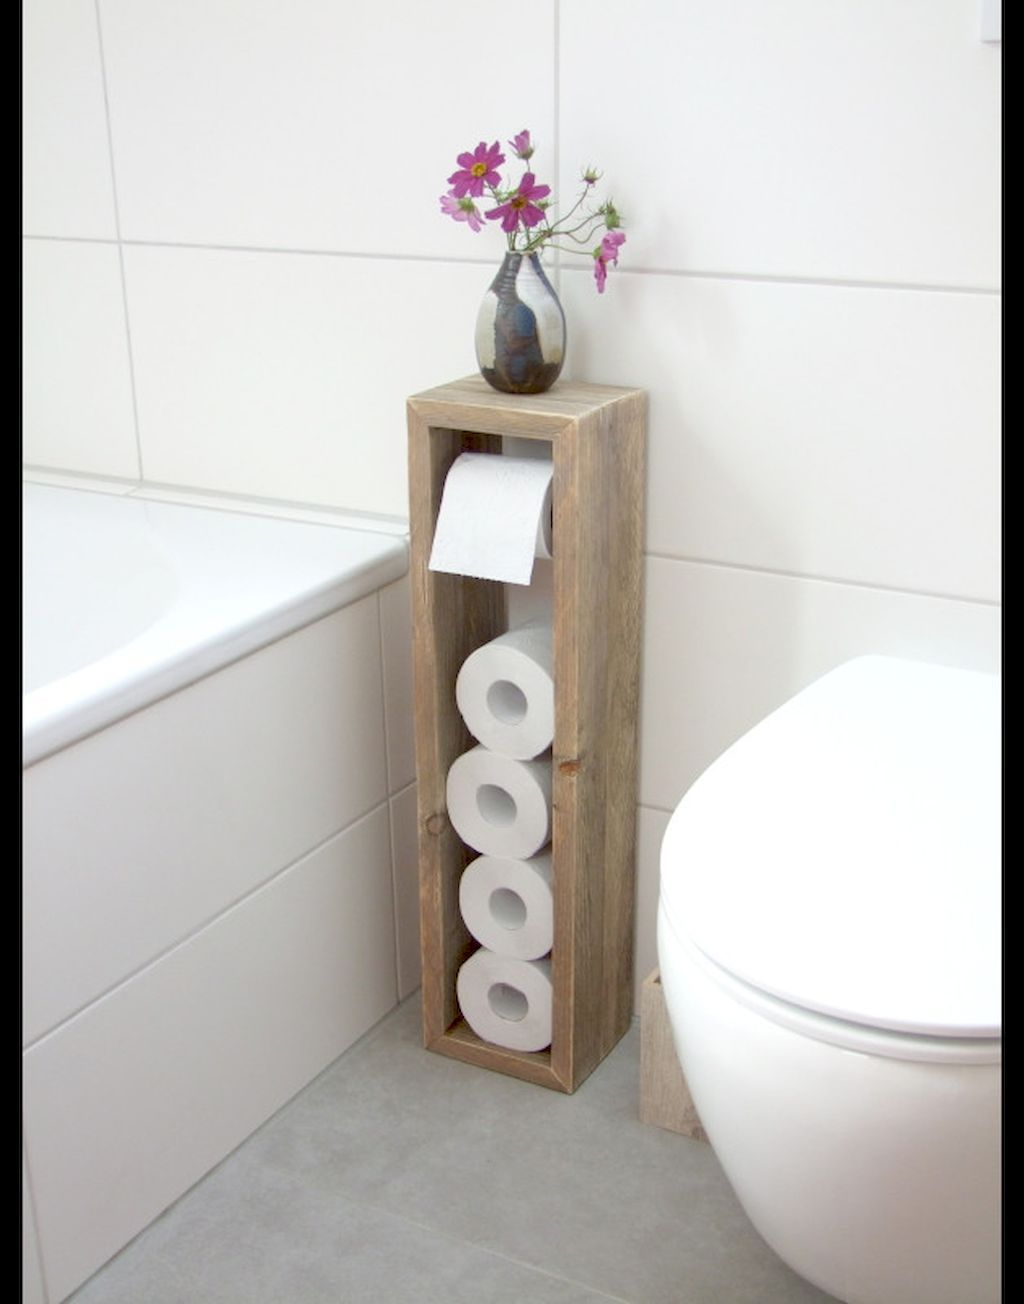 Space Saving Toilet Paper Holder Nice 50 Functional Bathroom Storage And Space Saving Ideas